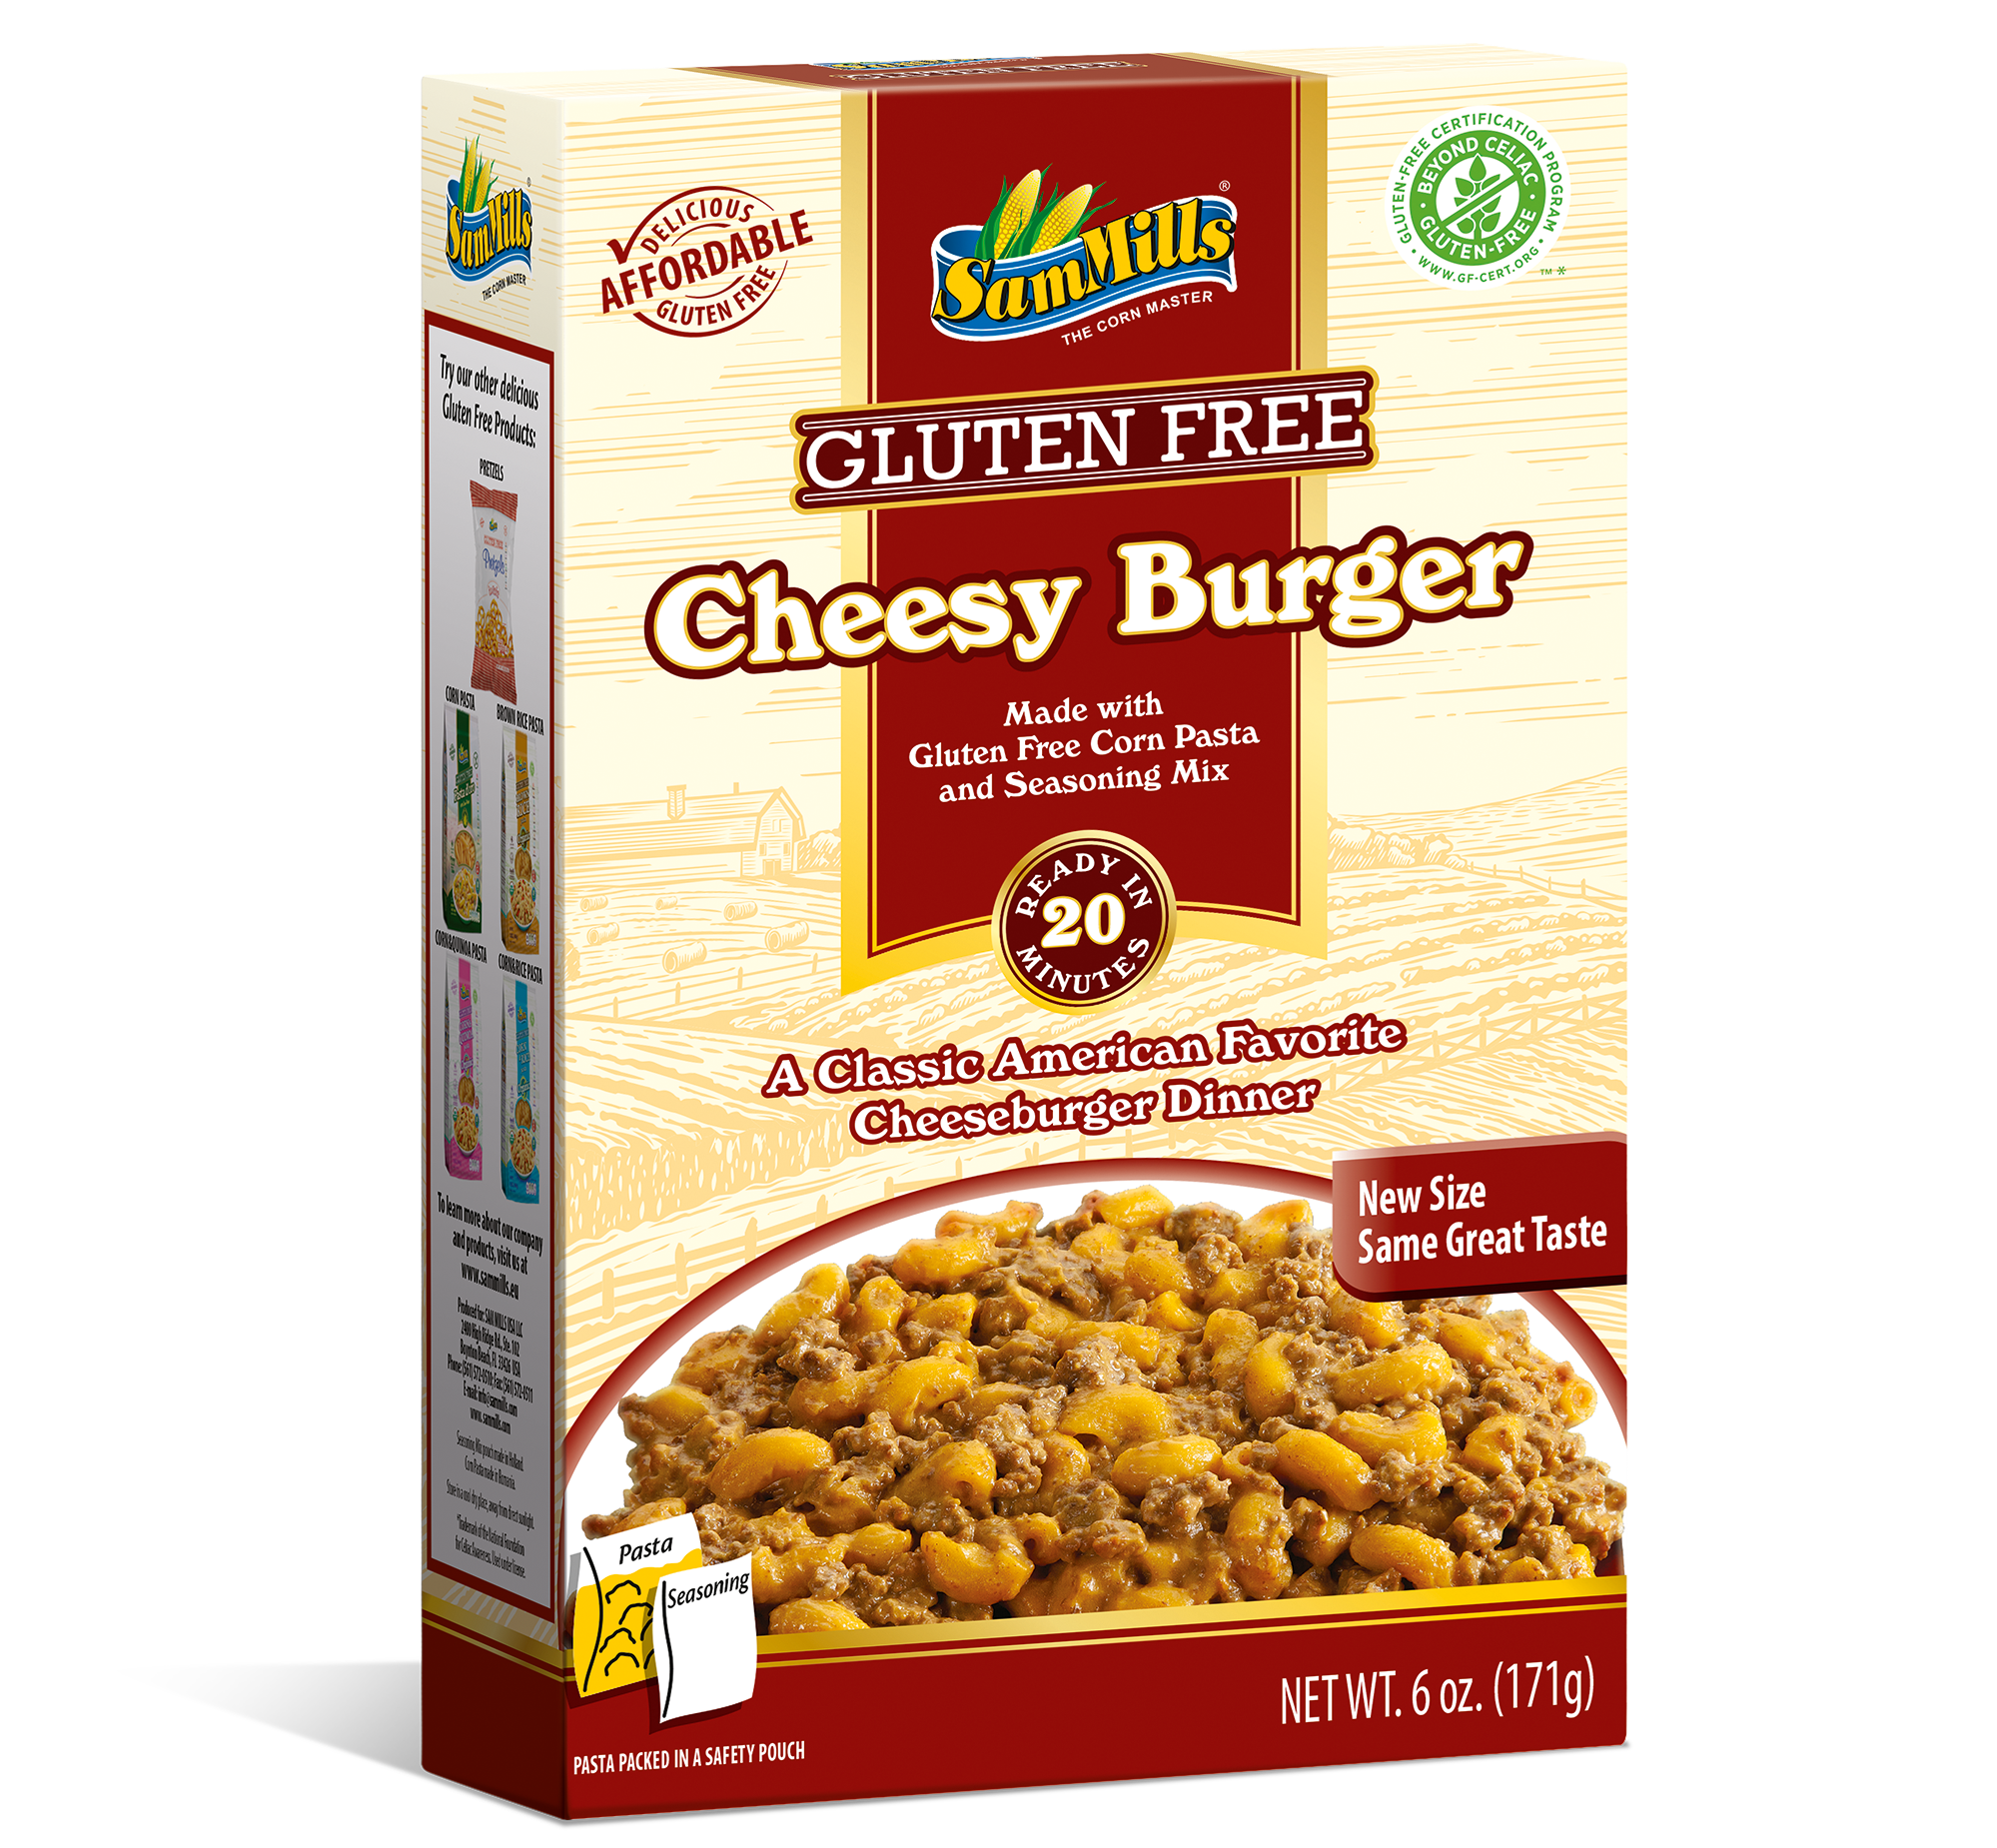 CheesyBurger Products Line